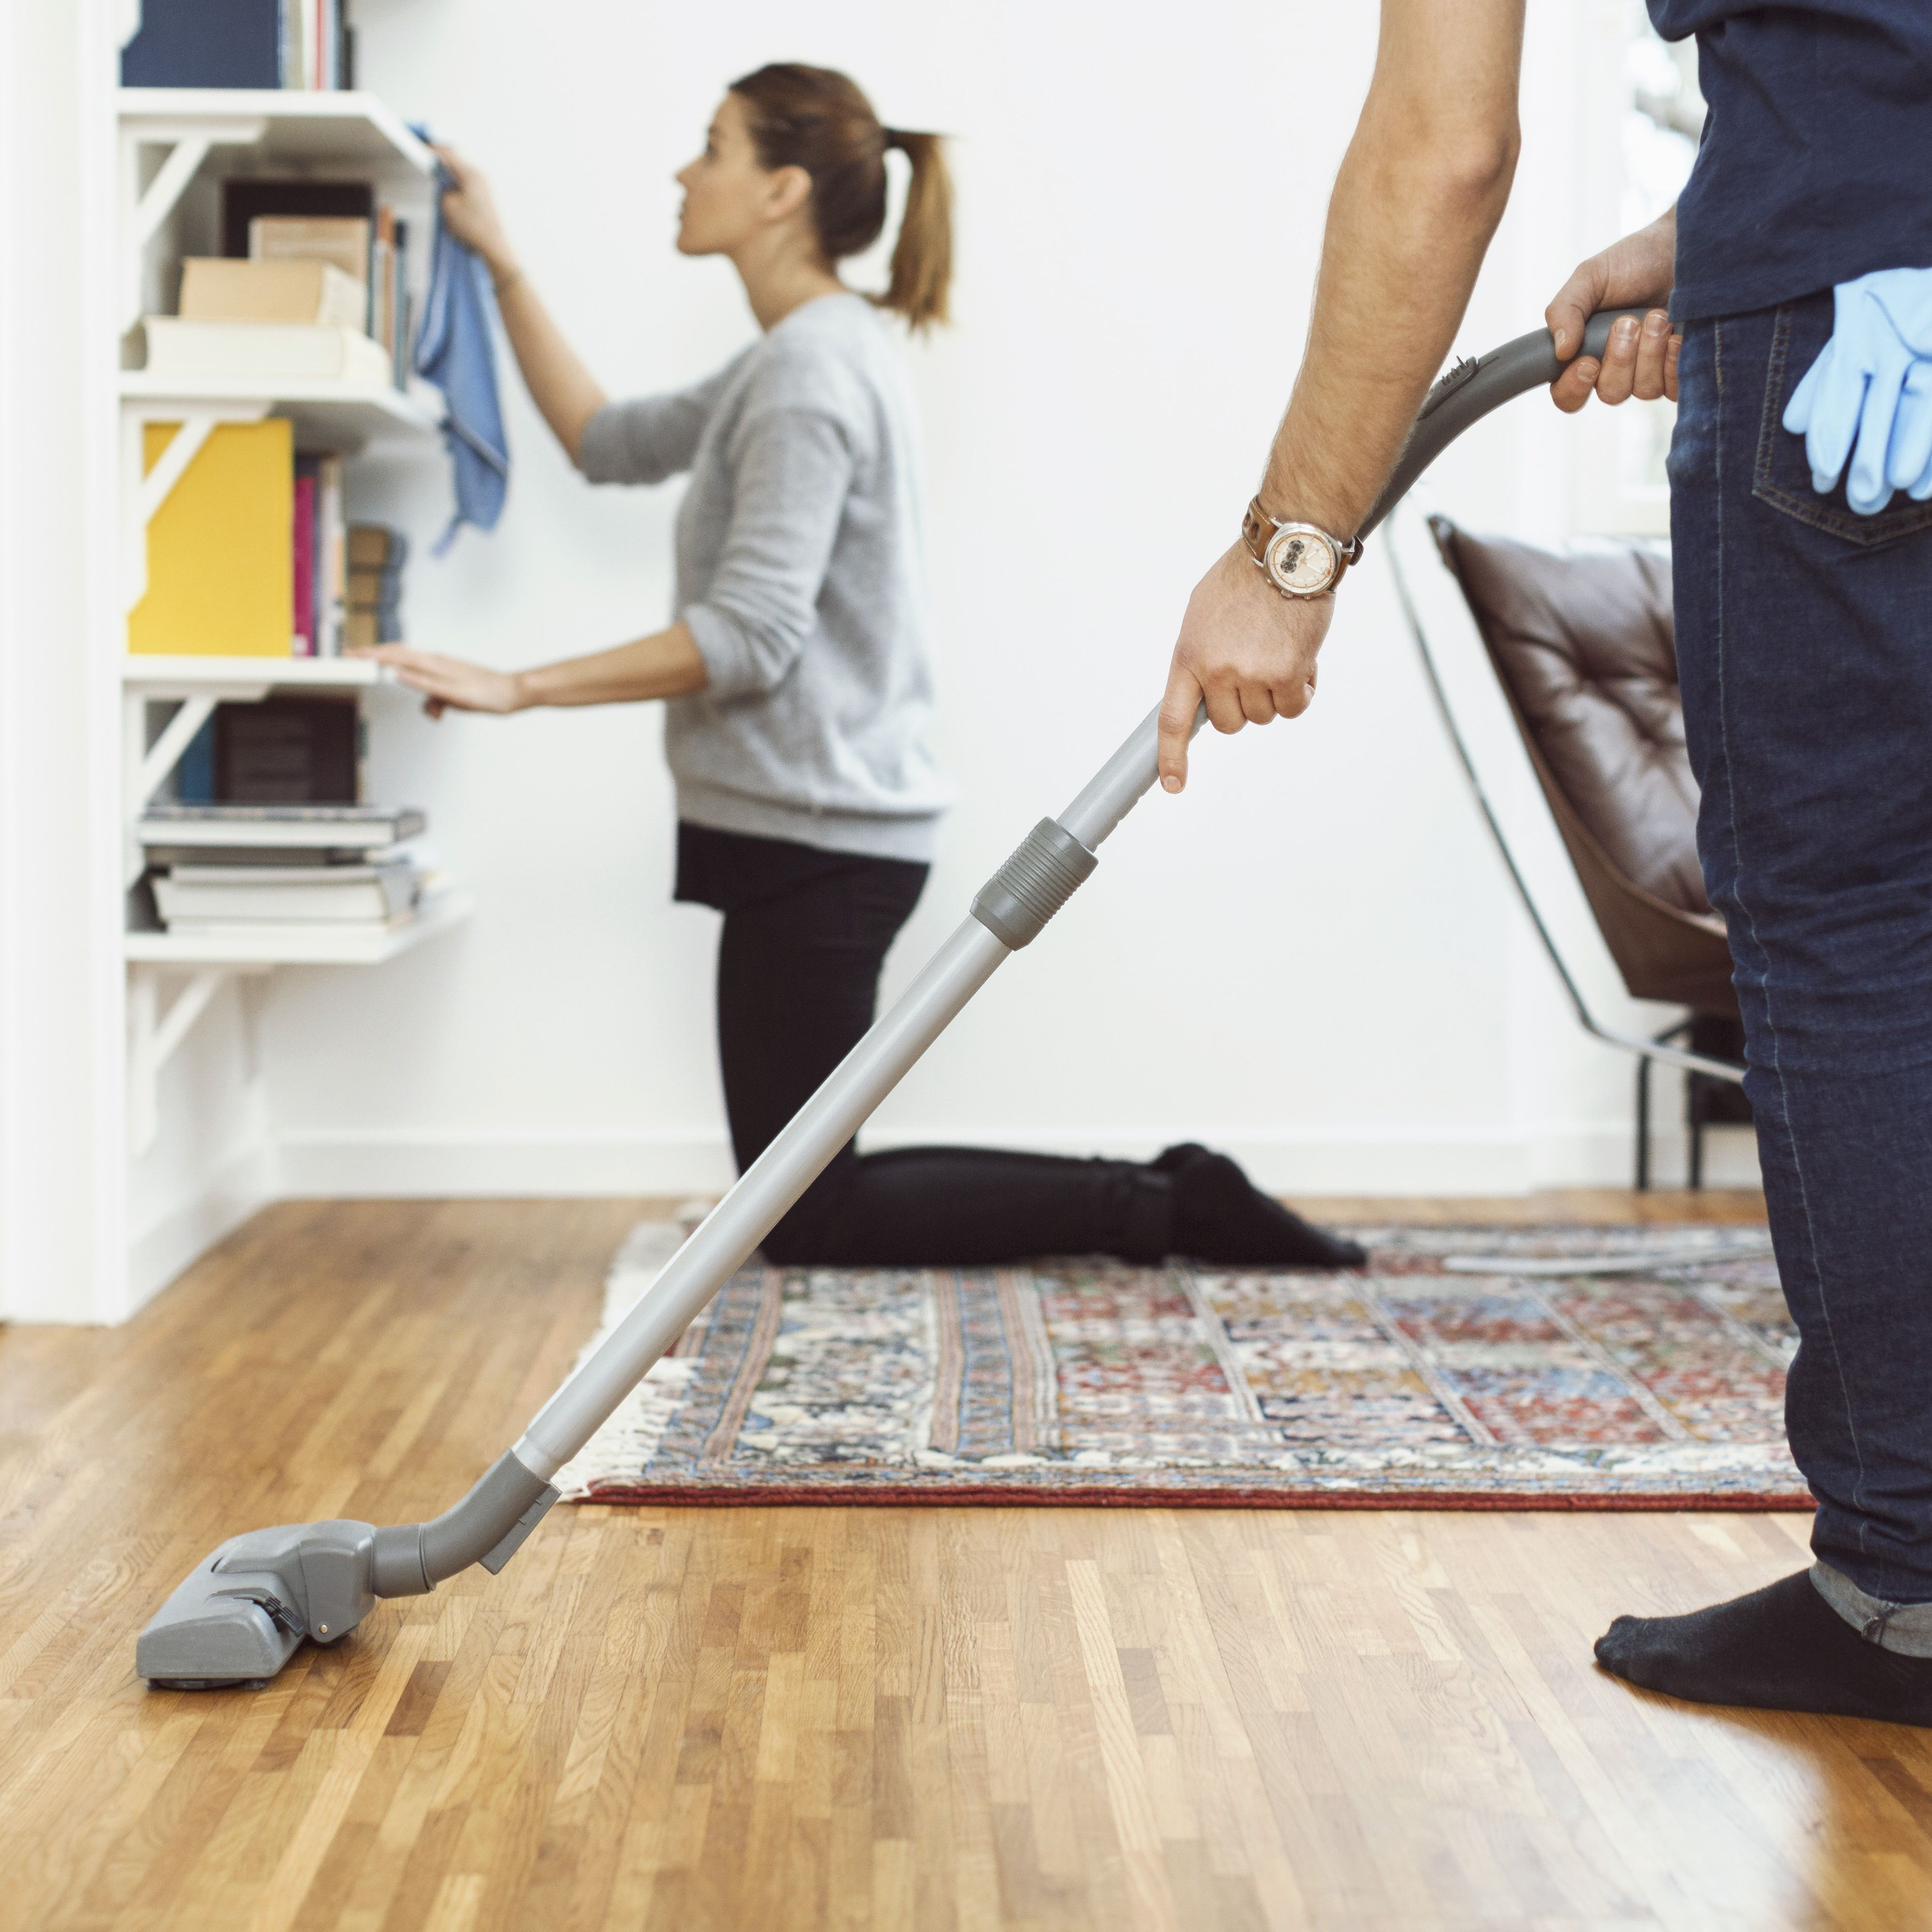 How to Keep Housework From Hurting Your Marriage